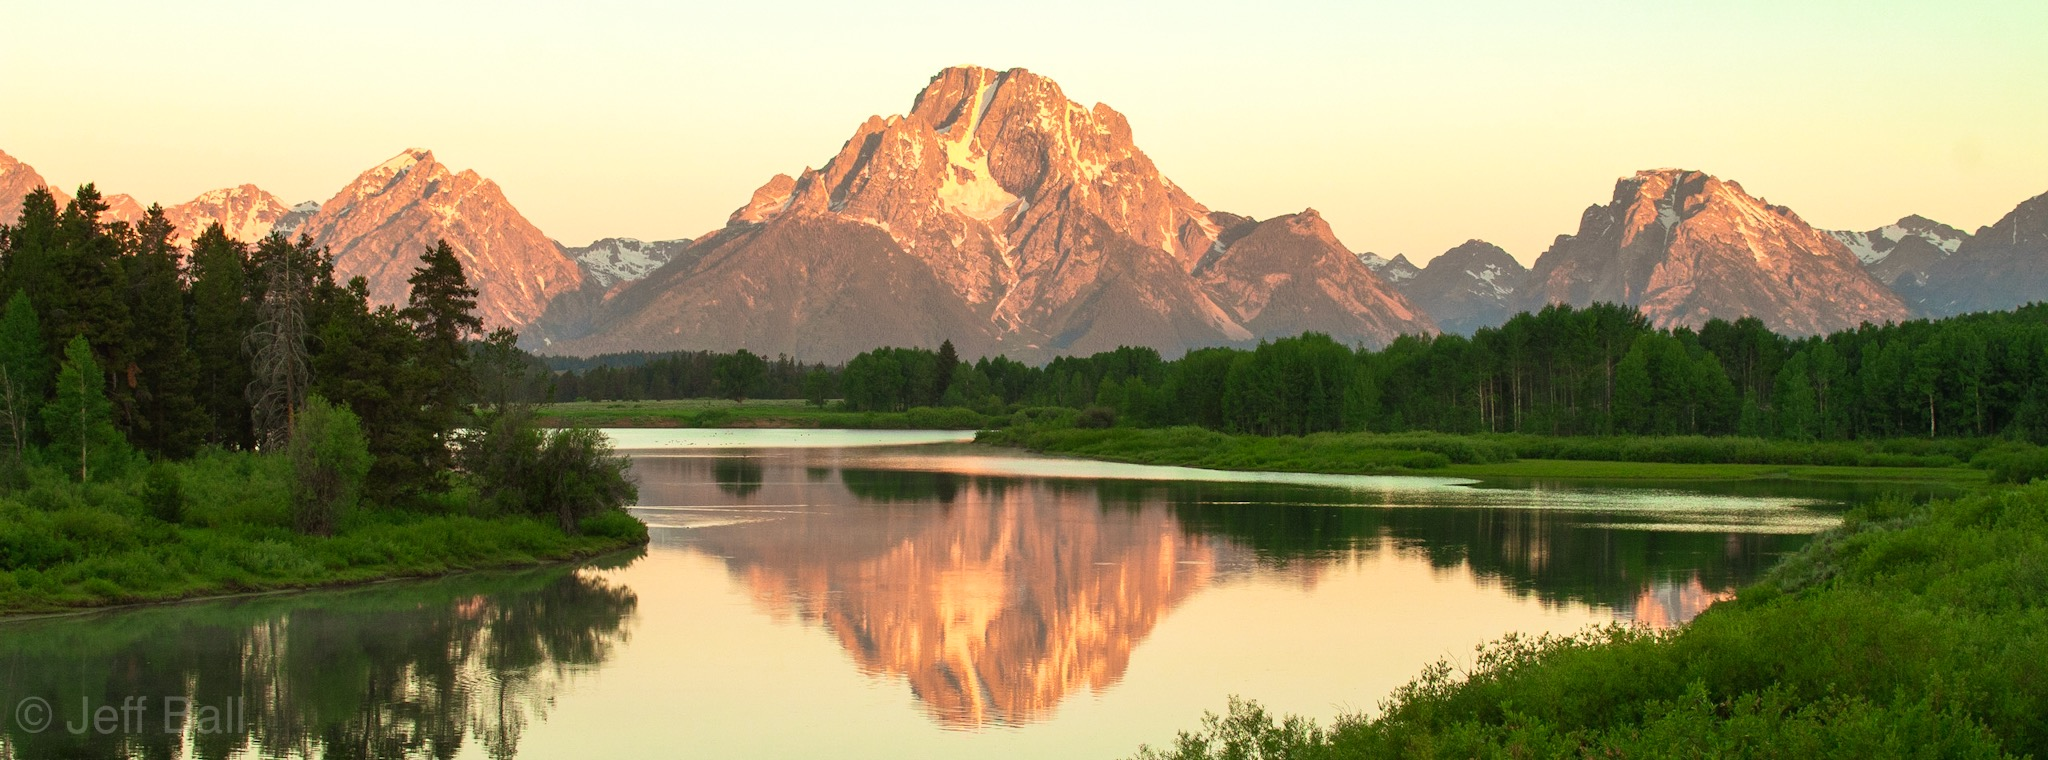 Mt. Moran and Snake River